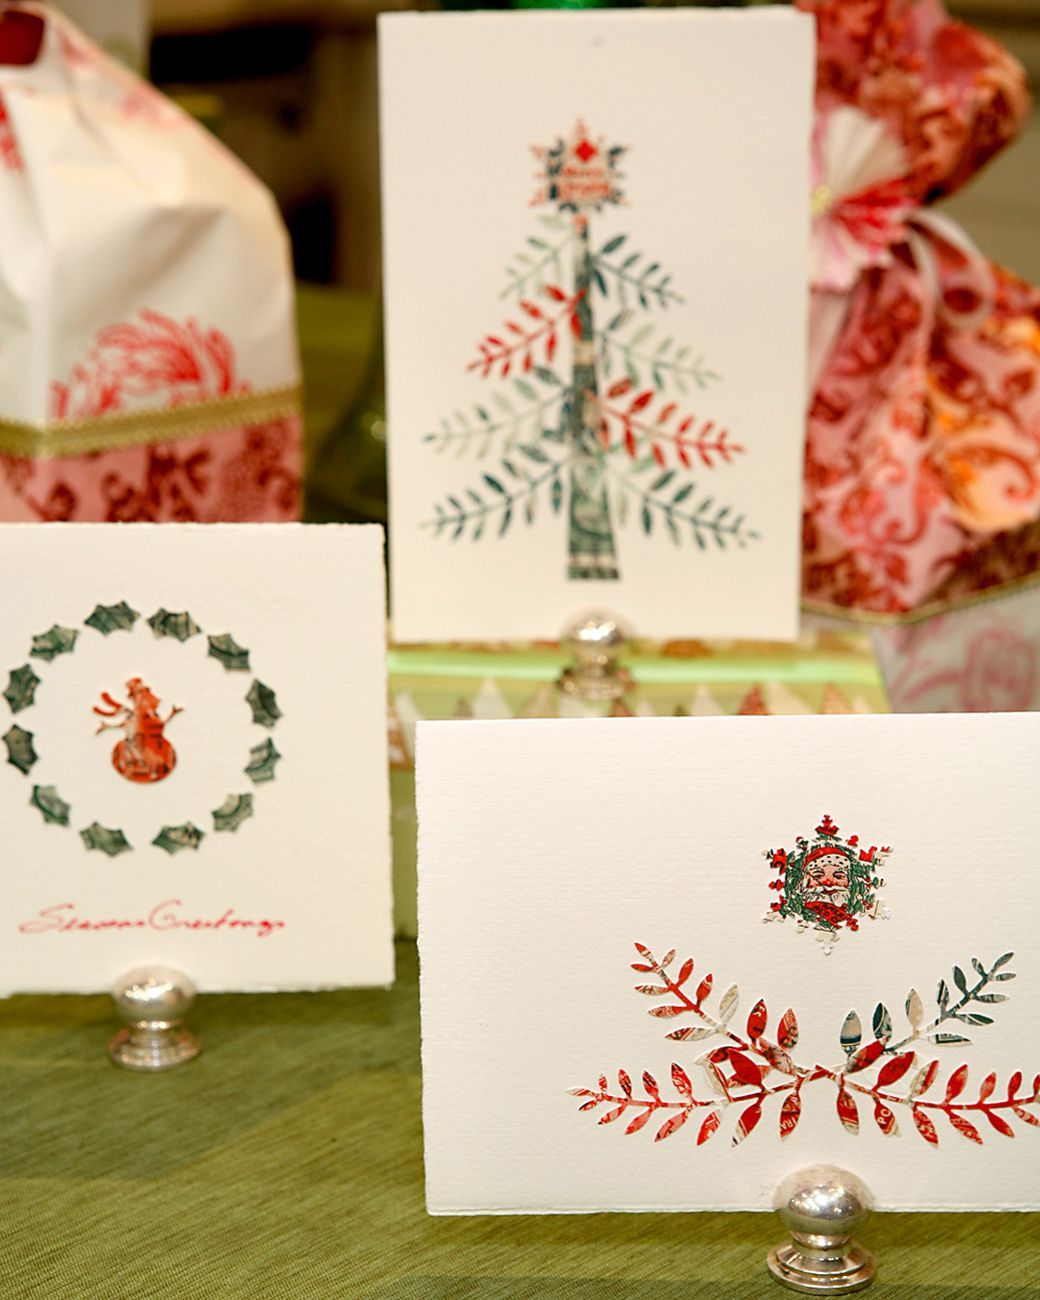 Use for gift tags! Punch designs from magazines  http://www.marthastewart.com/270533/punched-holiday-cards